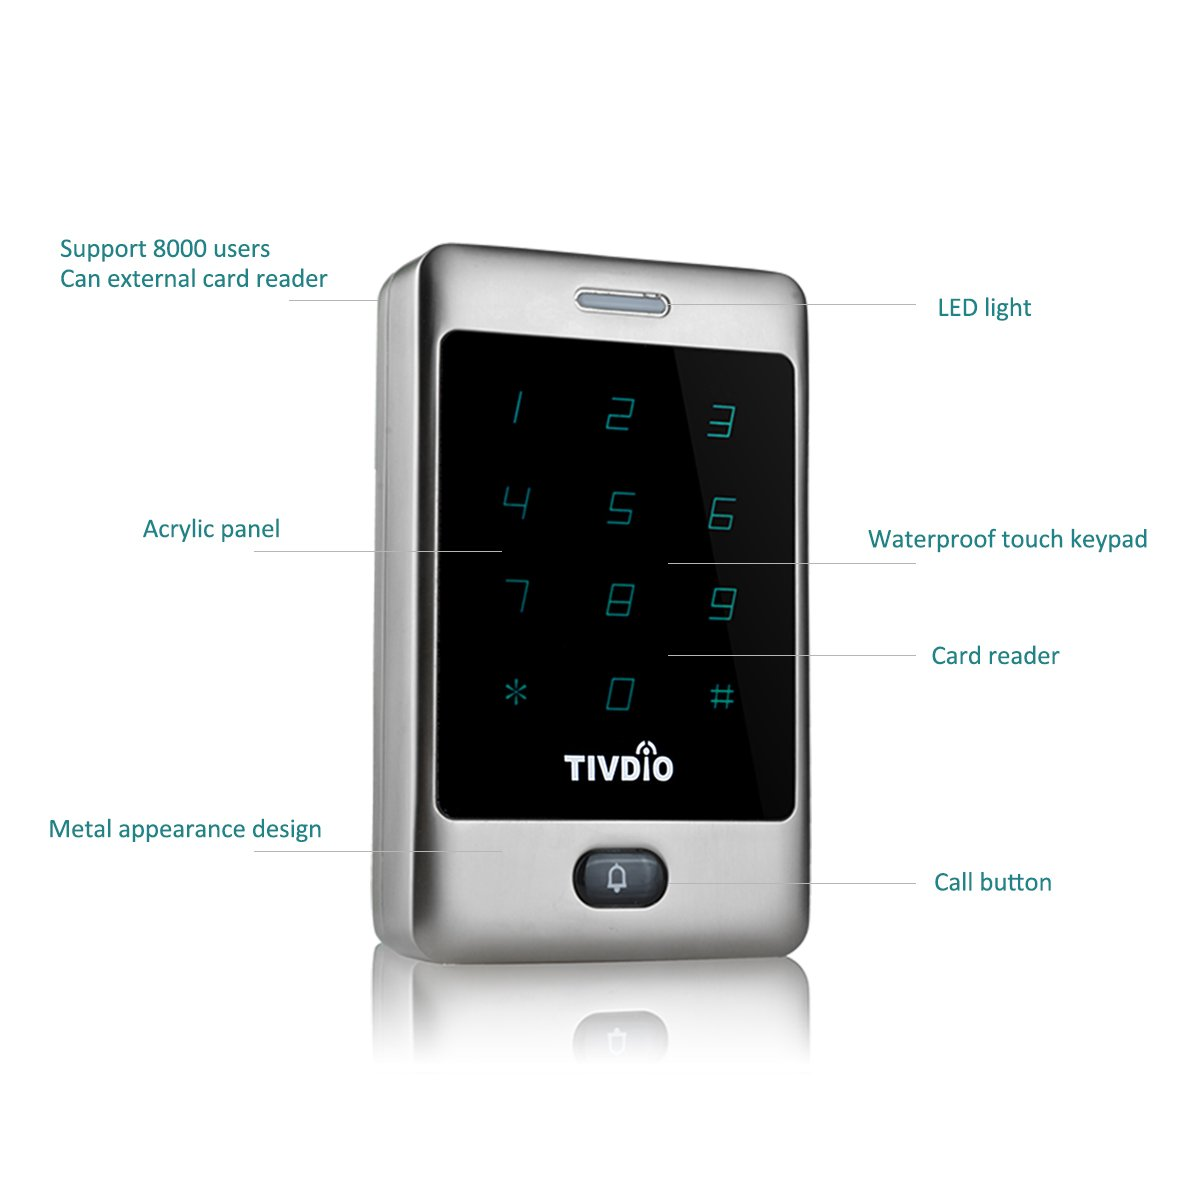 Tivdio T Ac800 Access Control System Door Keypad Locks Electronically Designed Touch Lock Outdoor 125khz Back Light Id Support